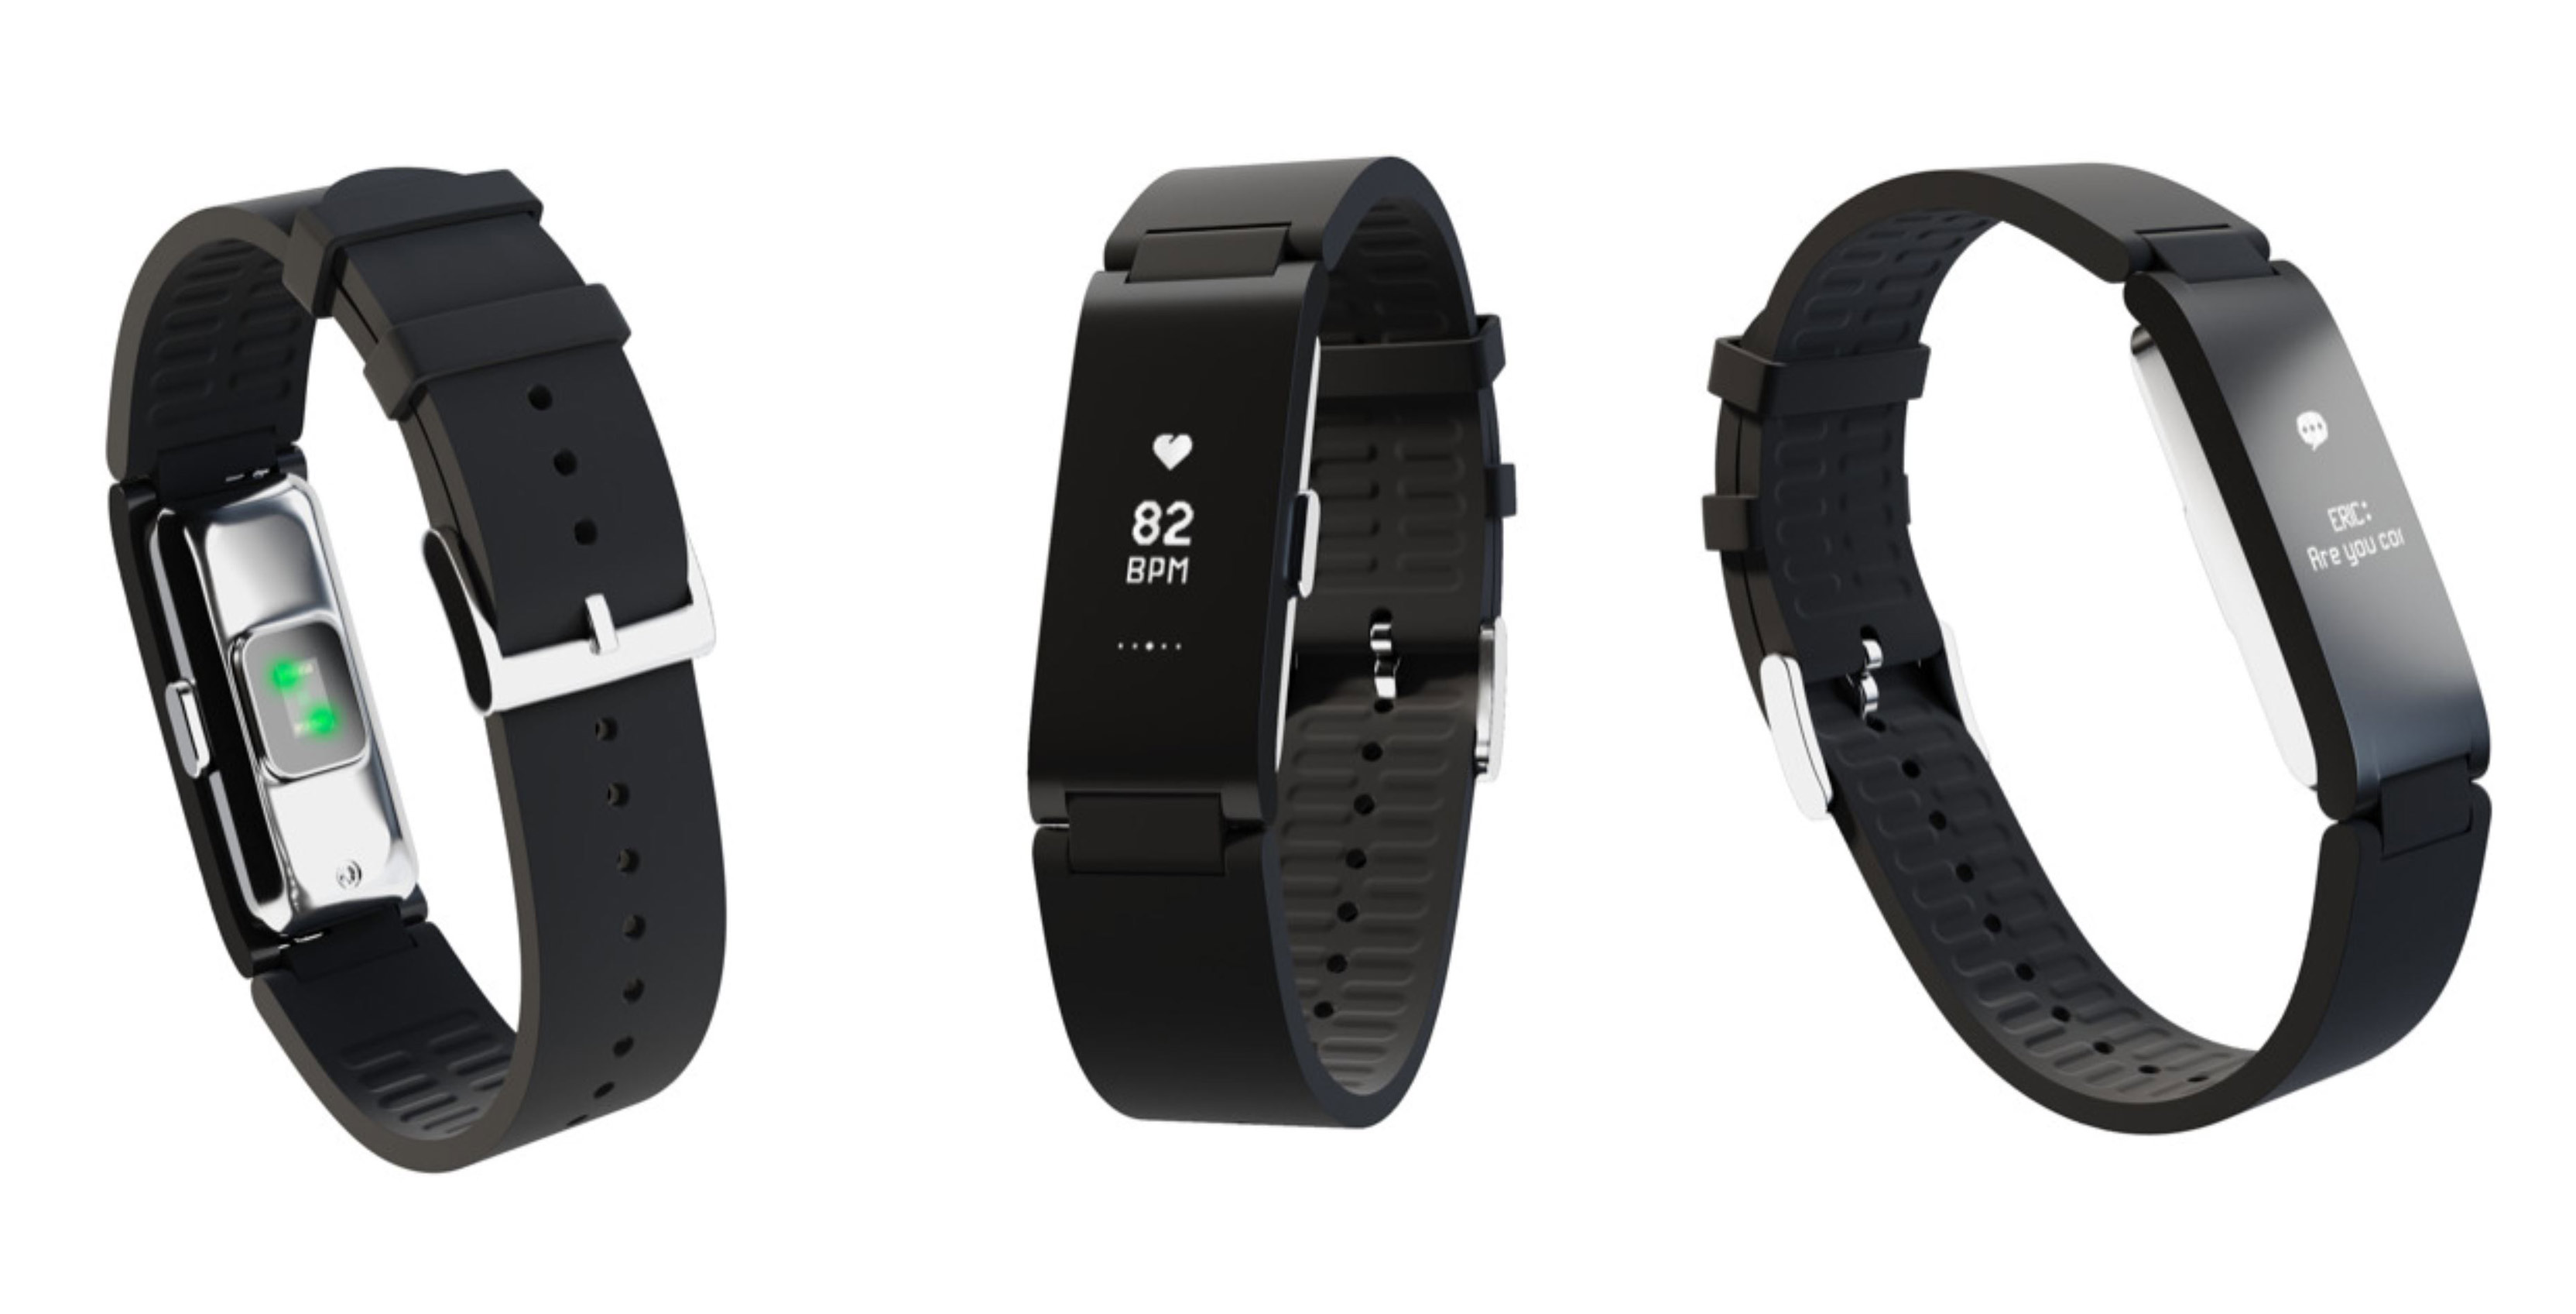 Withings Pulse HR: Specs, price, release date, and features